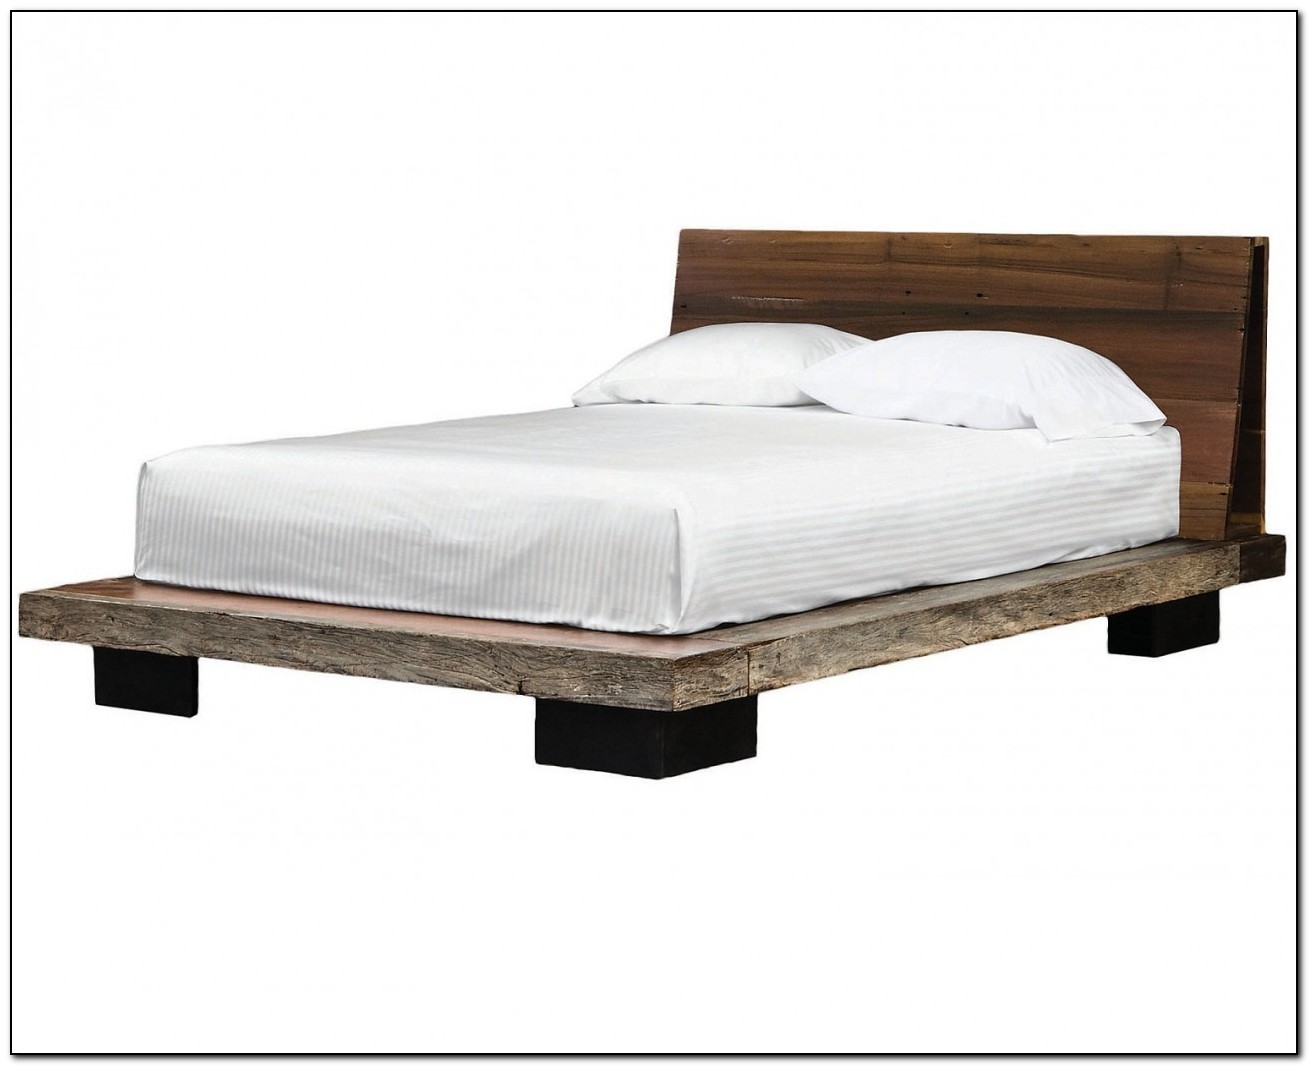 Queen size platform bed frame cheap beds home design ideas amdlgylnyb9428 Home furniture queen size bed